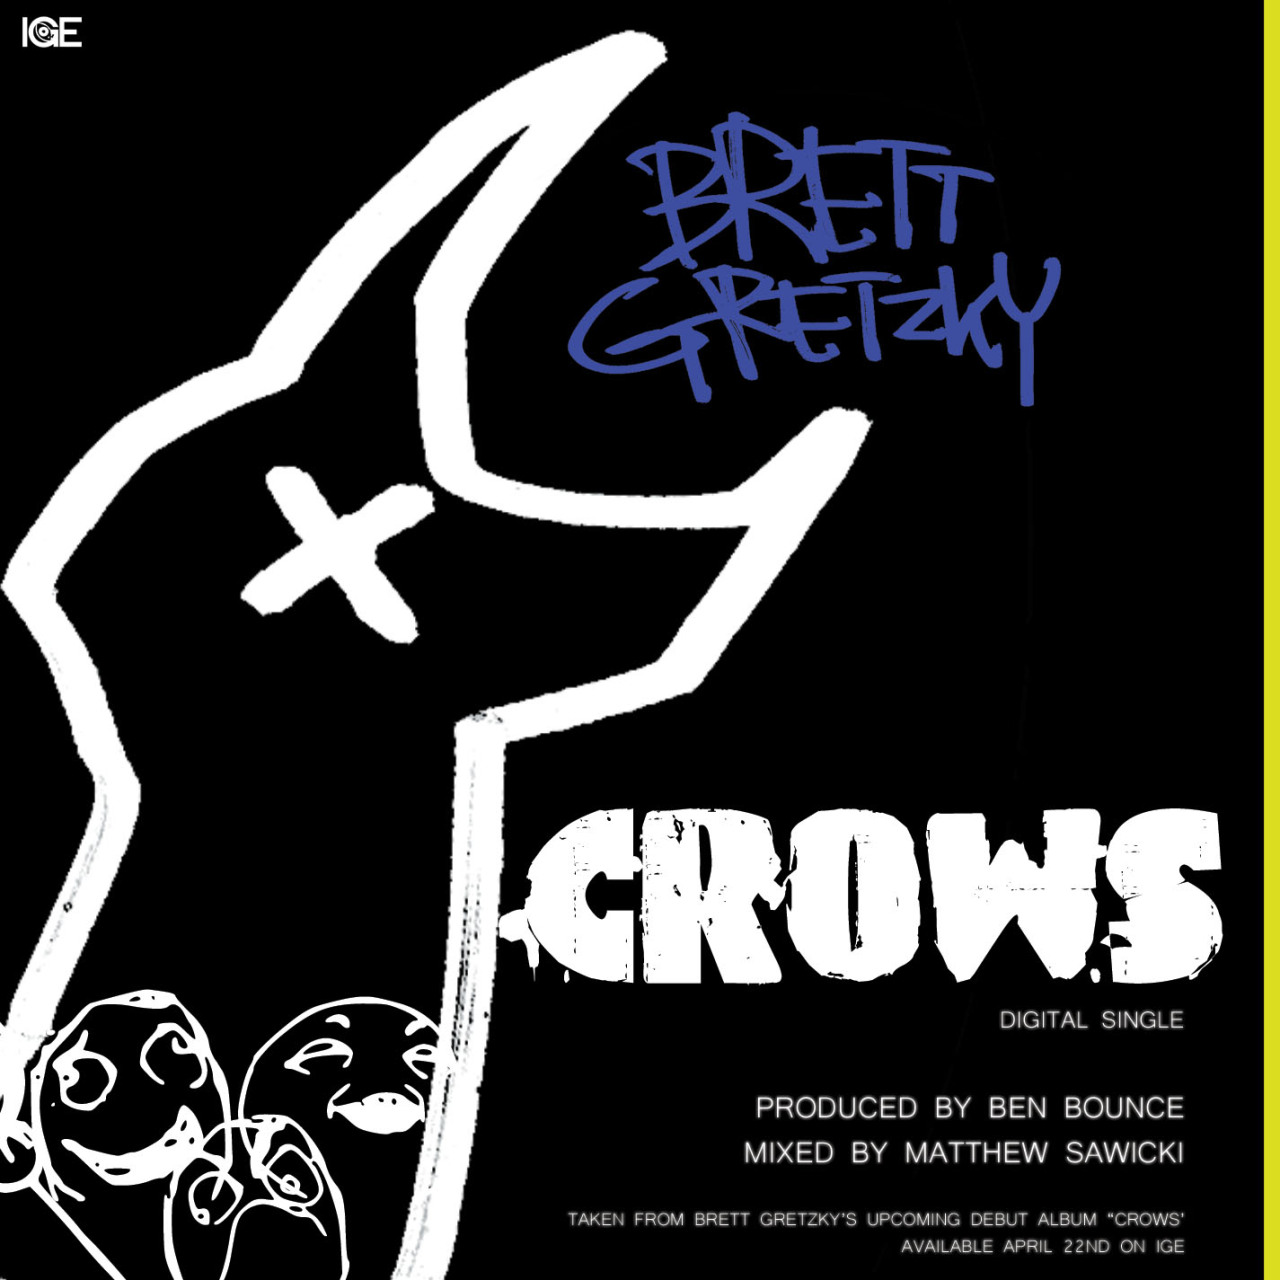 """Crows"" digital single from Brett Gretzky download it here: http://brettgretzky.bandcamp.com/track/crows"